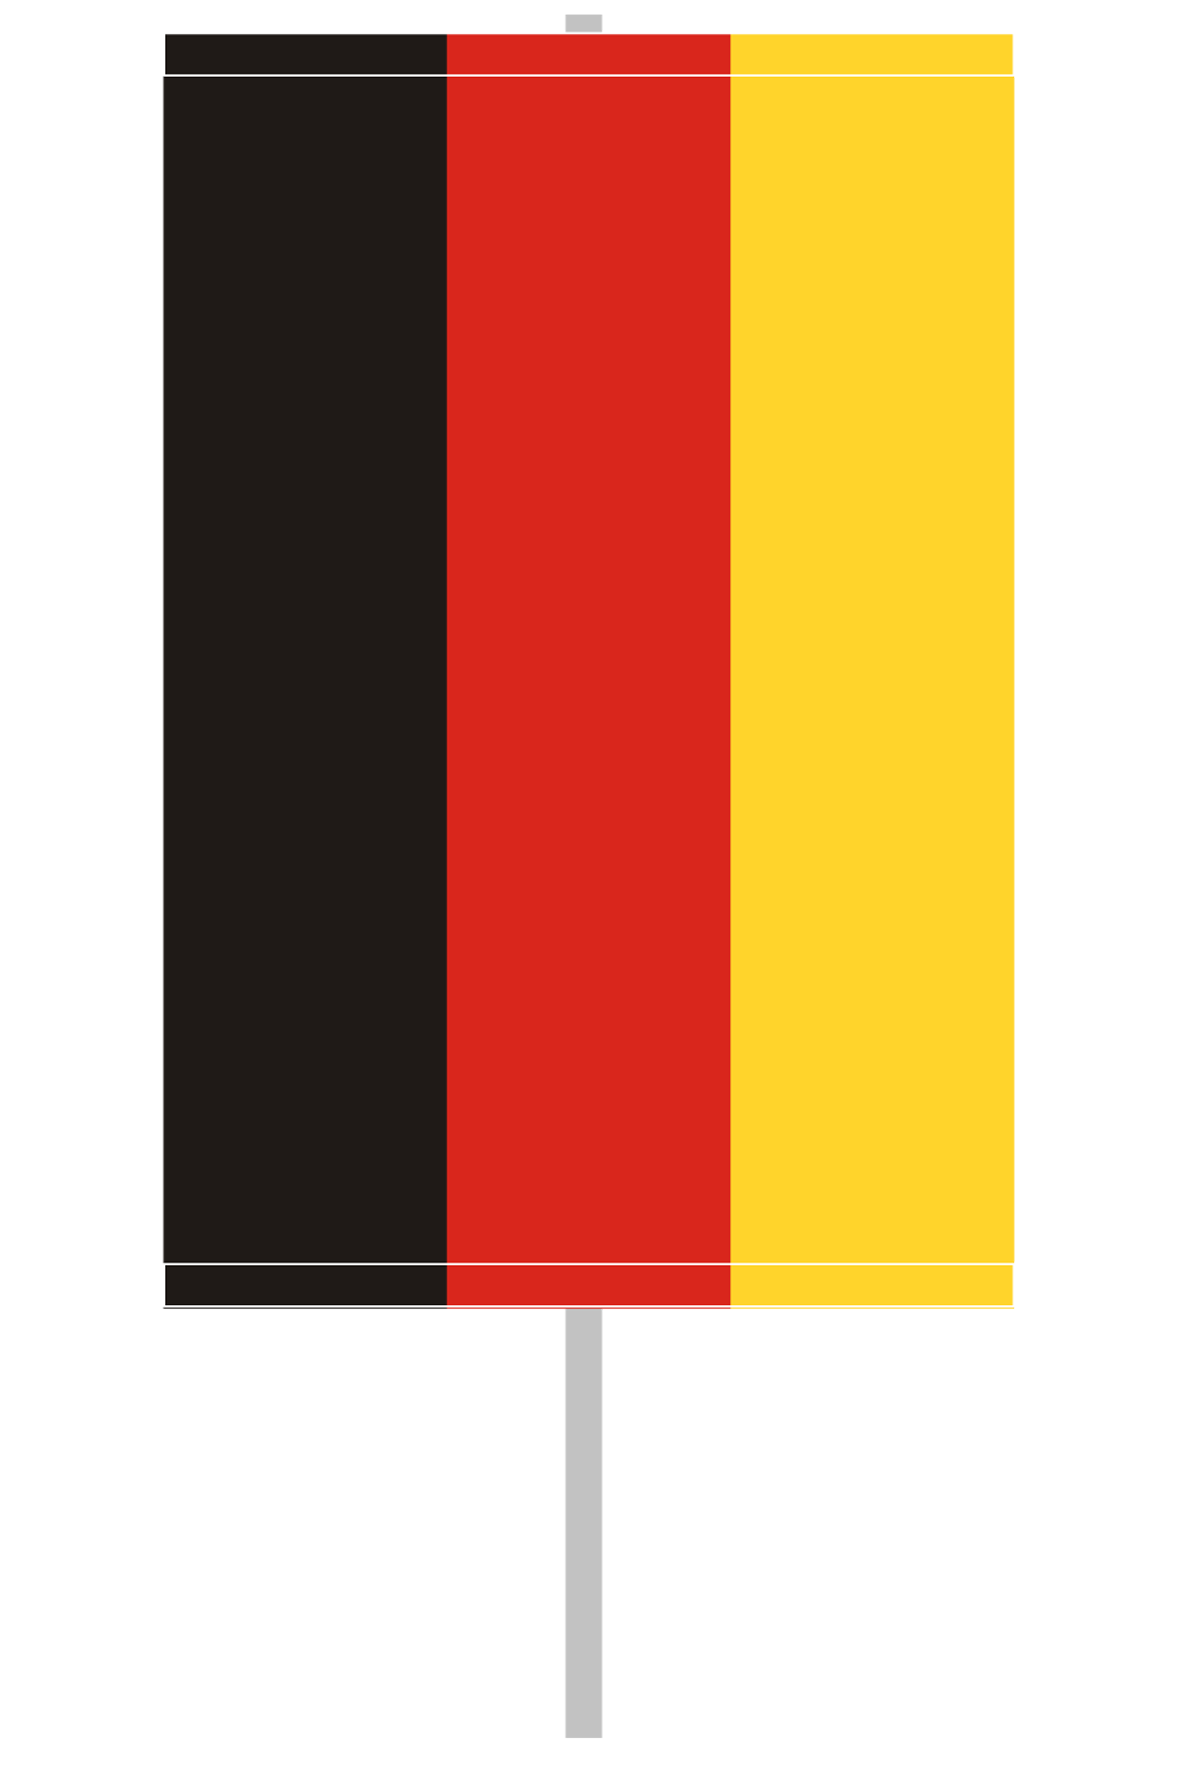 germany flag wallpaper vertical - photo #6